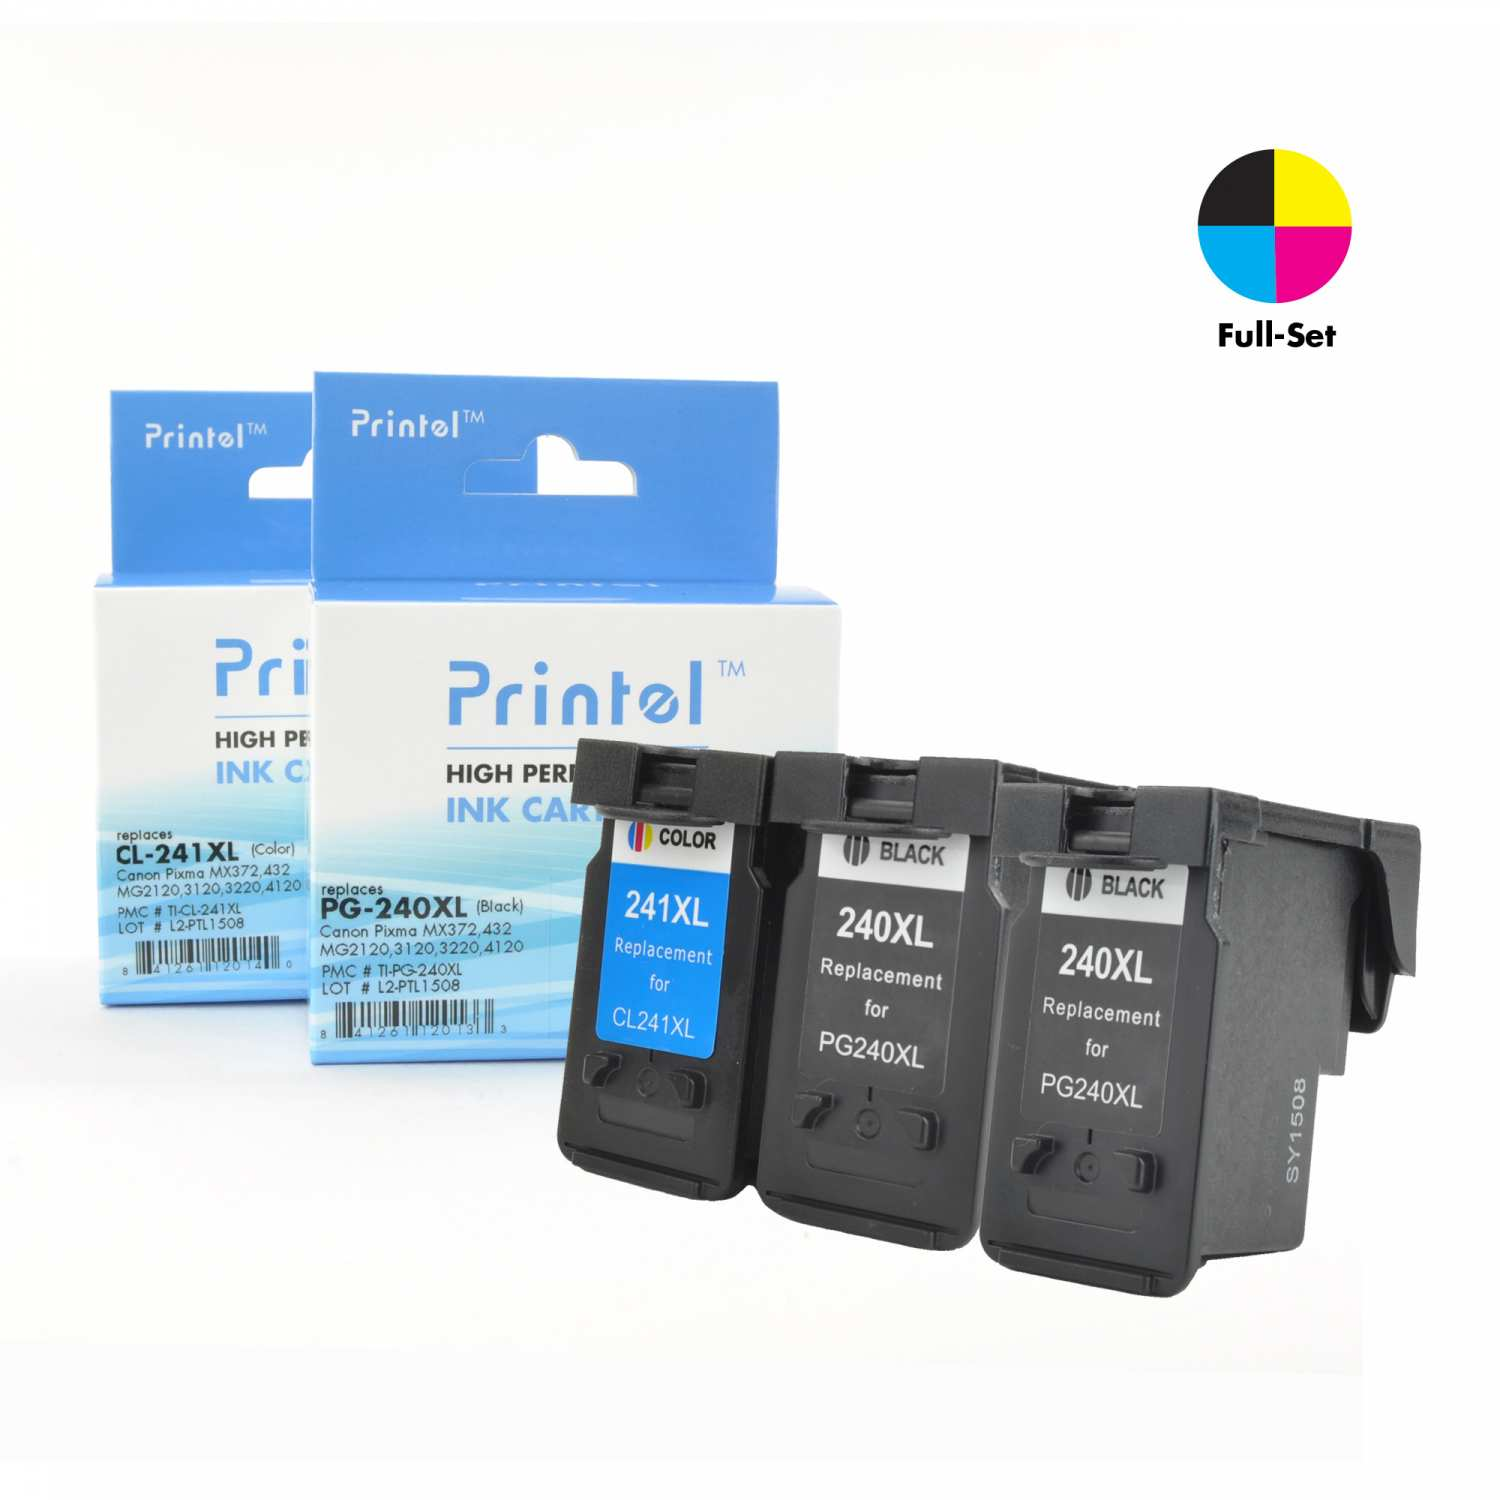 Remanufactured Ink Cartridge for Canon PG-240XL / PG-240, CL-241-XL / CL-241 2 Black, 1 Color (3 Pack), High Yield